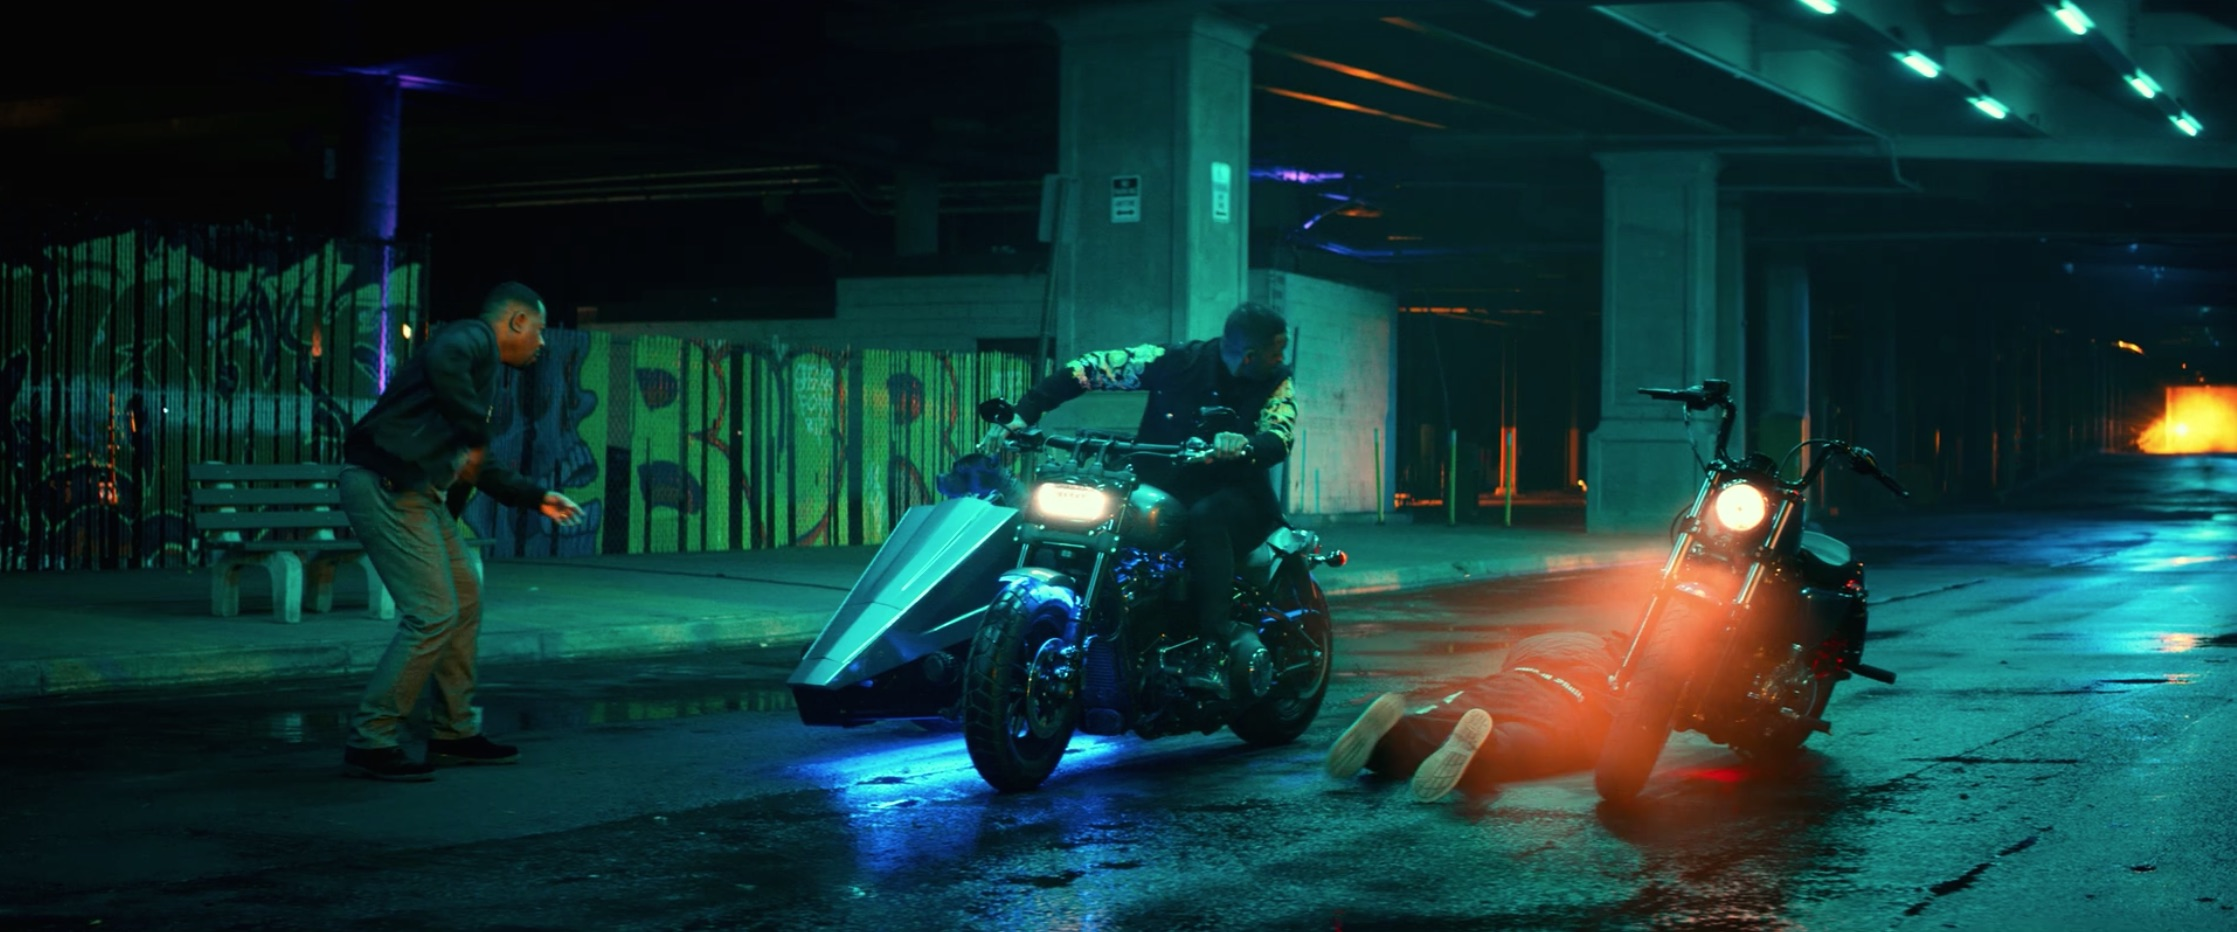 Bad Boys For Life will smith and martin lawrence look at rider on street